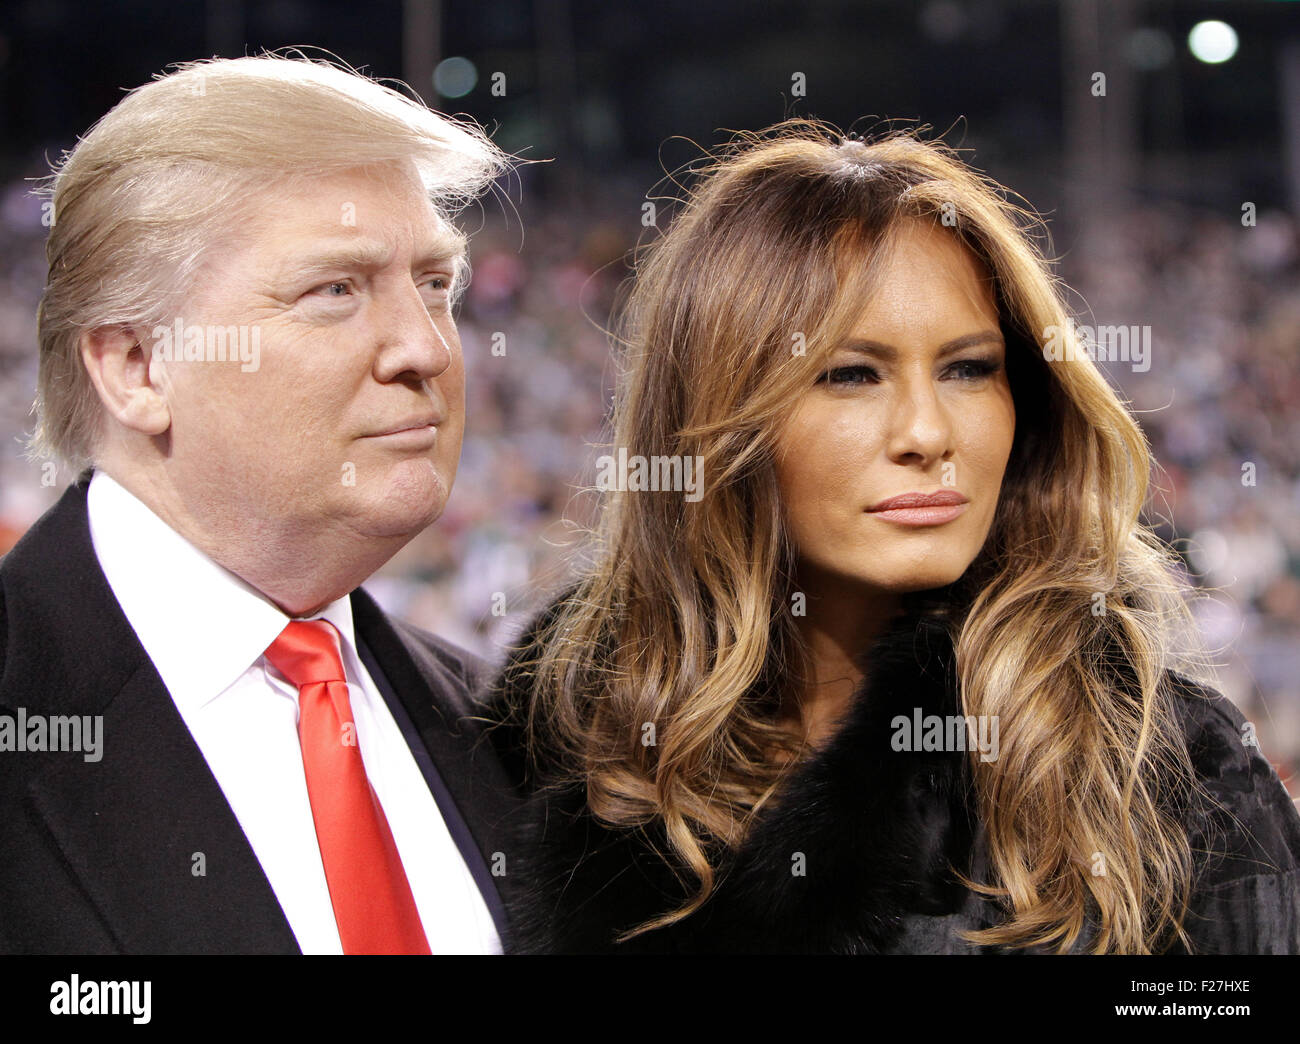 Donald Trump and wife Melania Trump at a football game at MetLife Stadium on November 13, 2011 in East Rutherford, - Stock Image